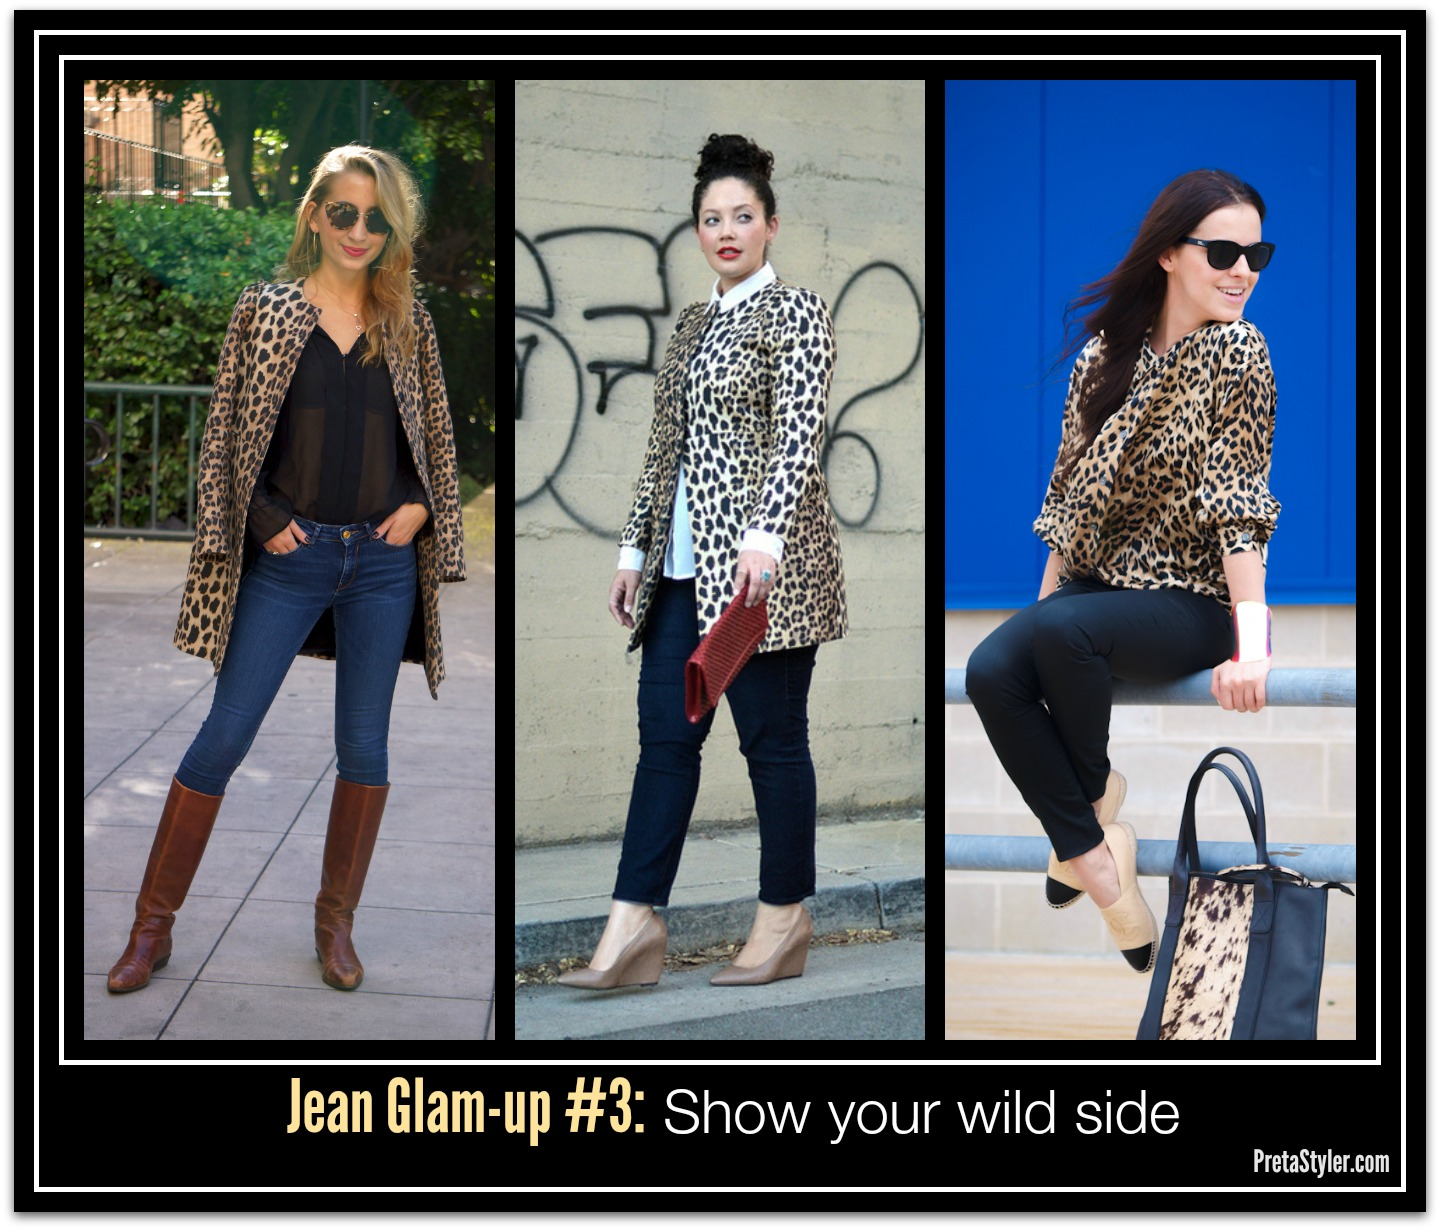 How to Glam-up Blue Jeans #3